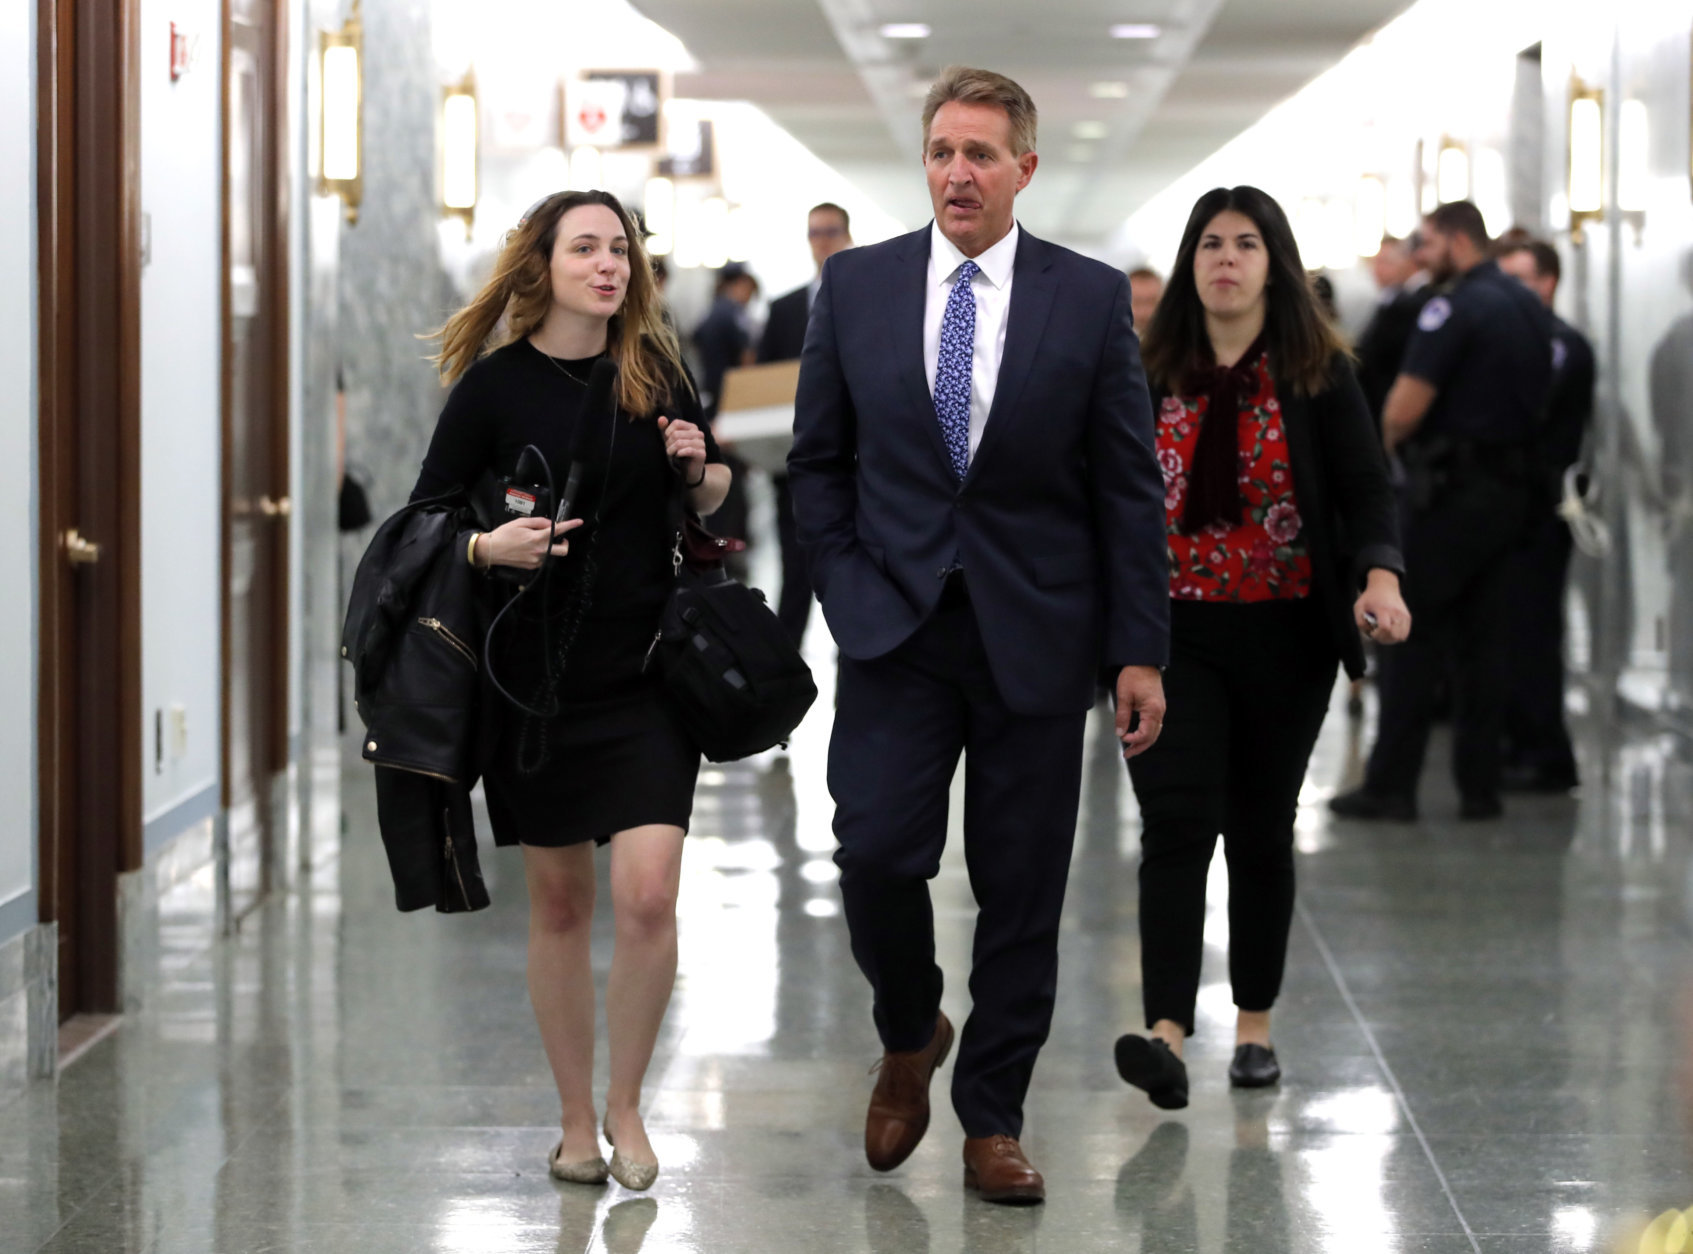 Sen. Jeff Flake, R-Ariz., arrives for the Senate Judiciary hearing on Capitol Hill in Washington, Thursday, Sept. 27, 2018 with Christine Blasey Ford and Supreme Court nominee Brett Kavanaugh.(AP Photo/Carolyn Kaster)